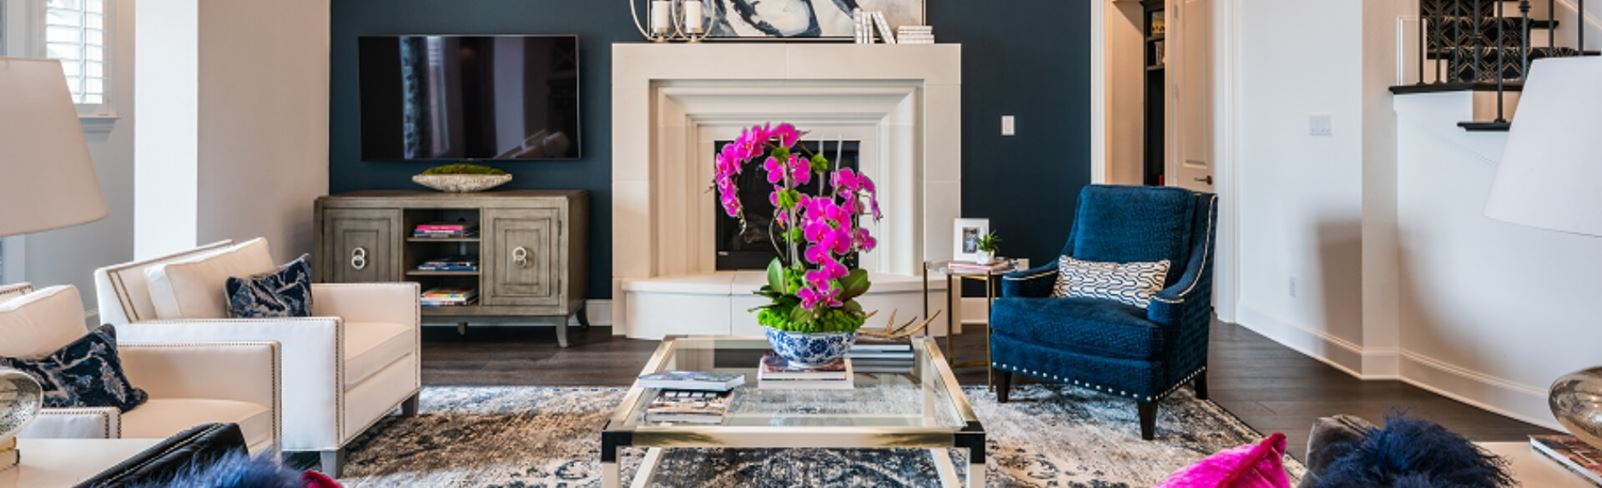 Model Home Living Room by Highland Homes at The Grove Frisco